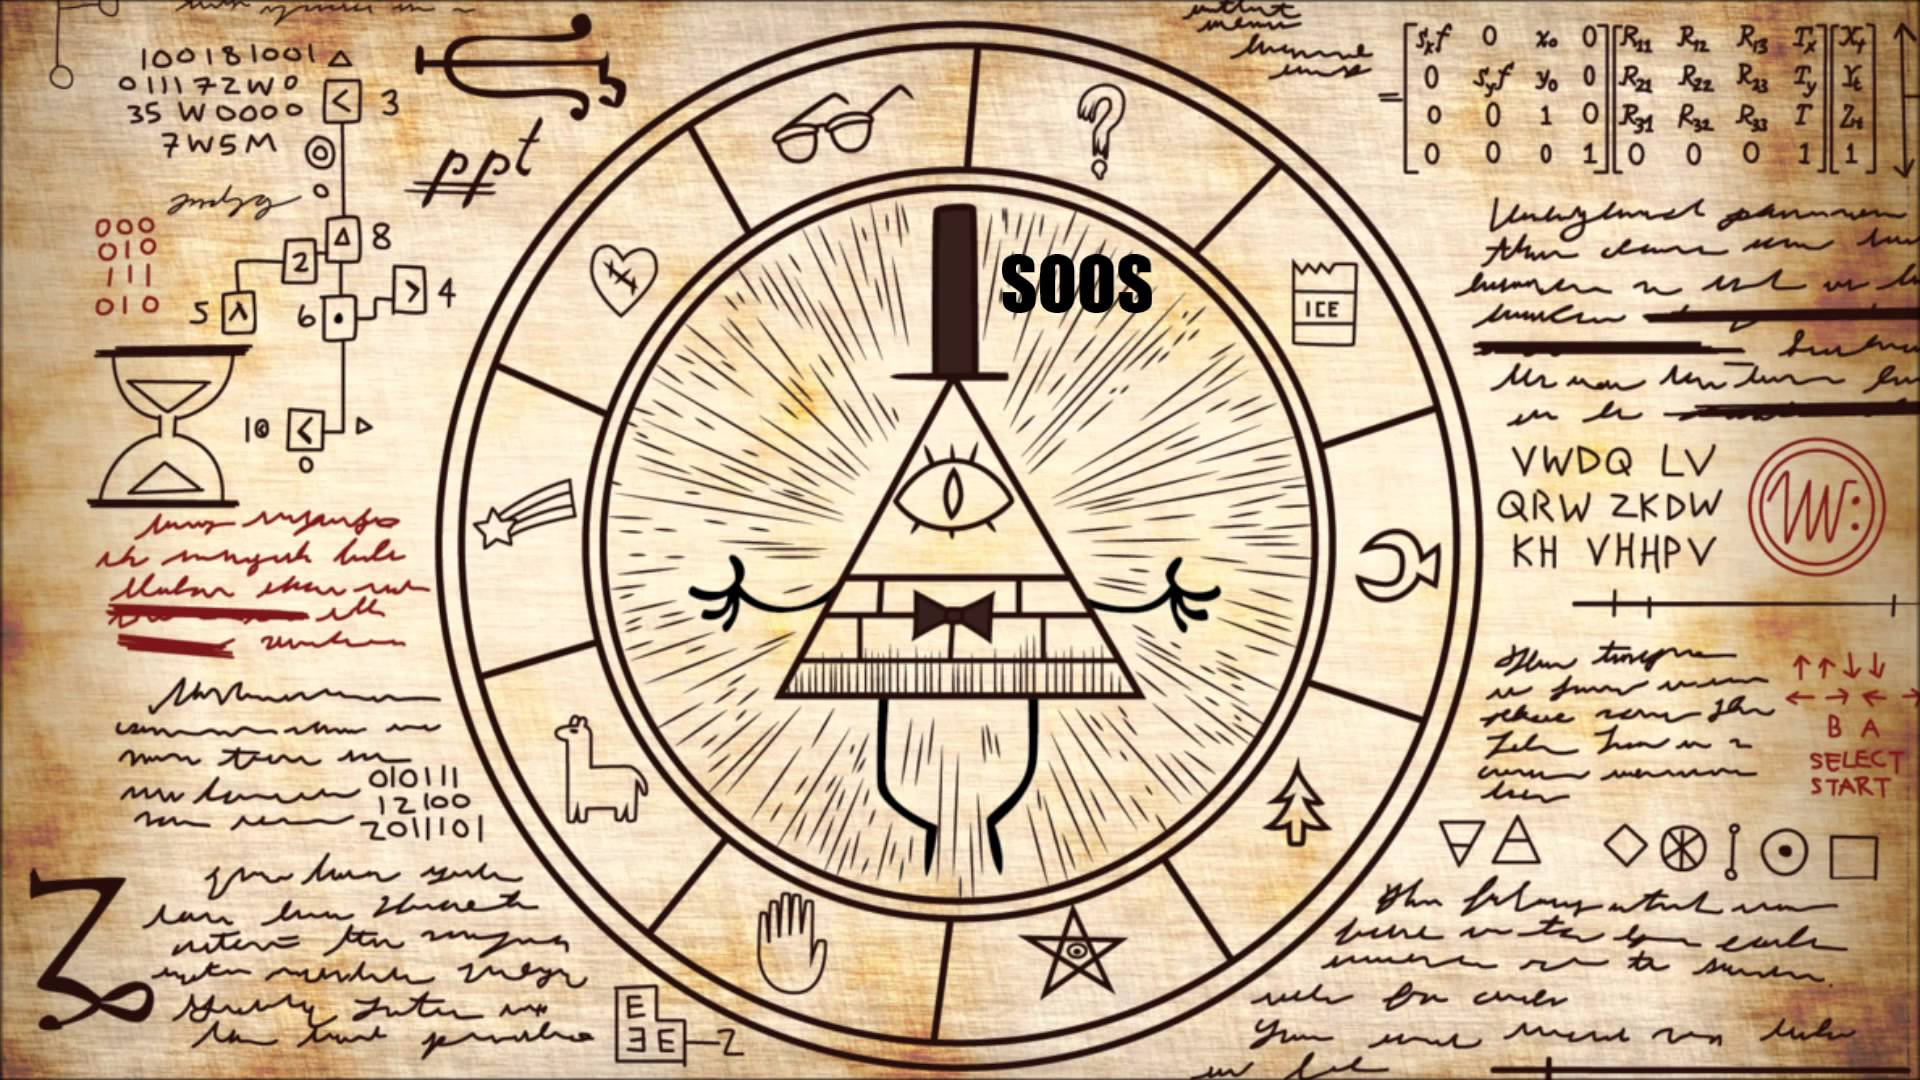 50] Gravity Falls Bill Cipher Wallpaper on WallpaperSafari 1920x1080